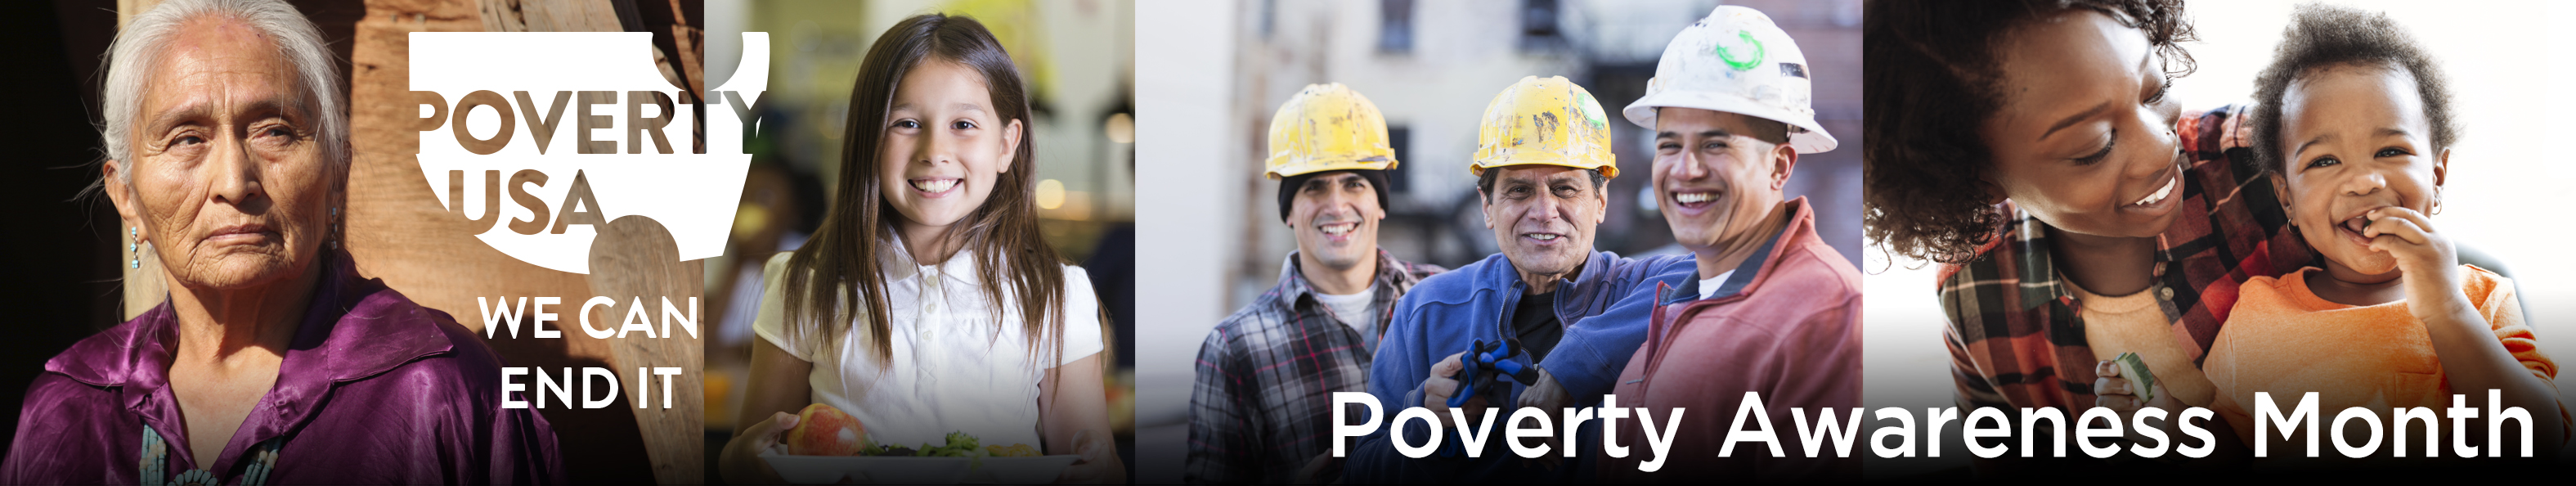 Poverty Awareness Month 2019